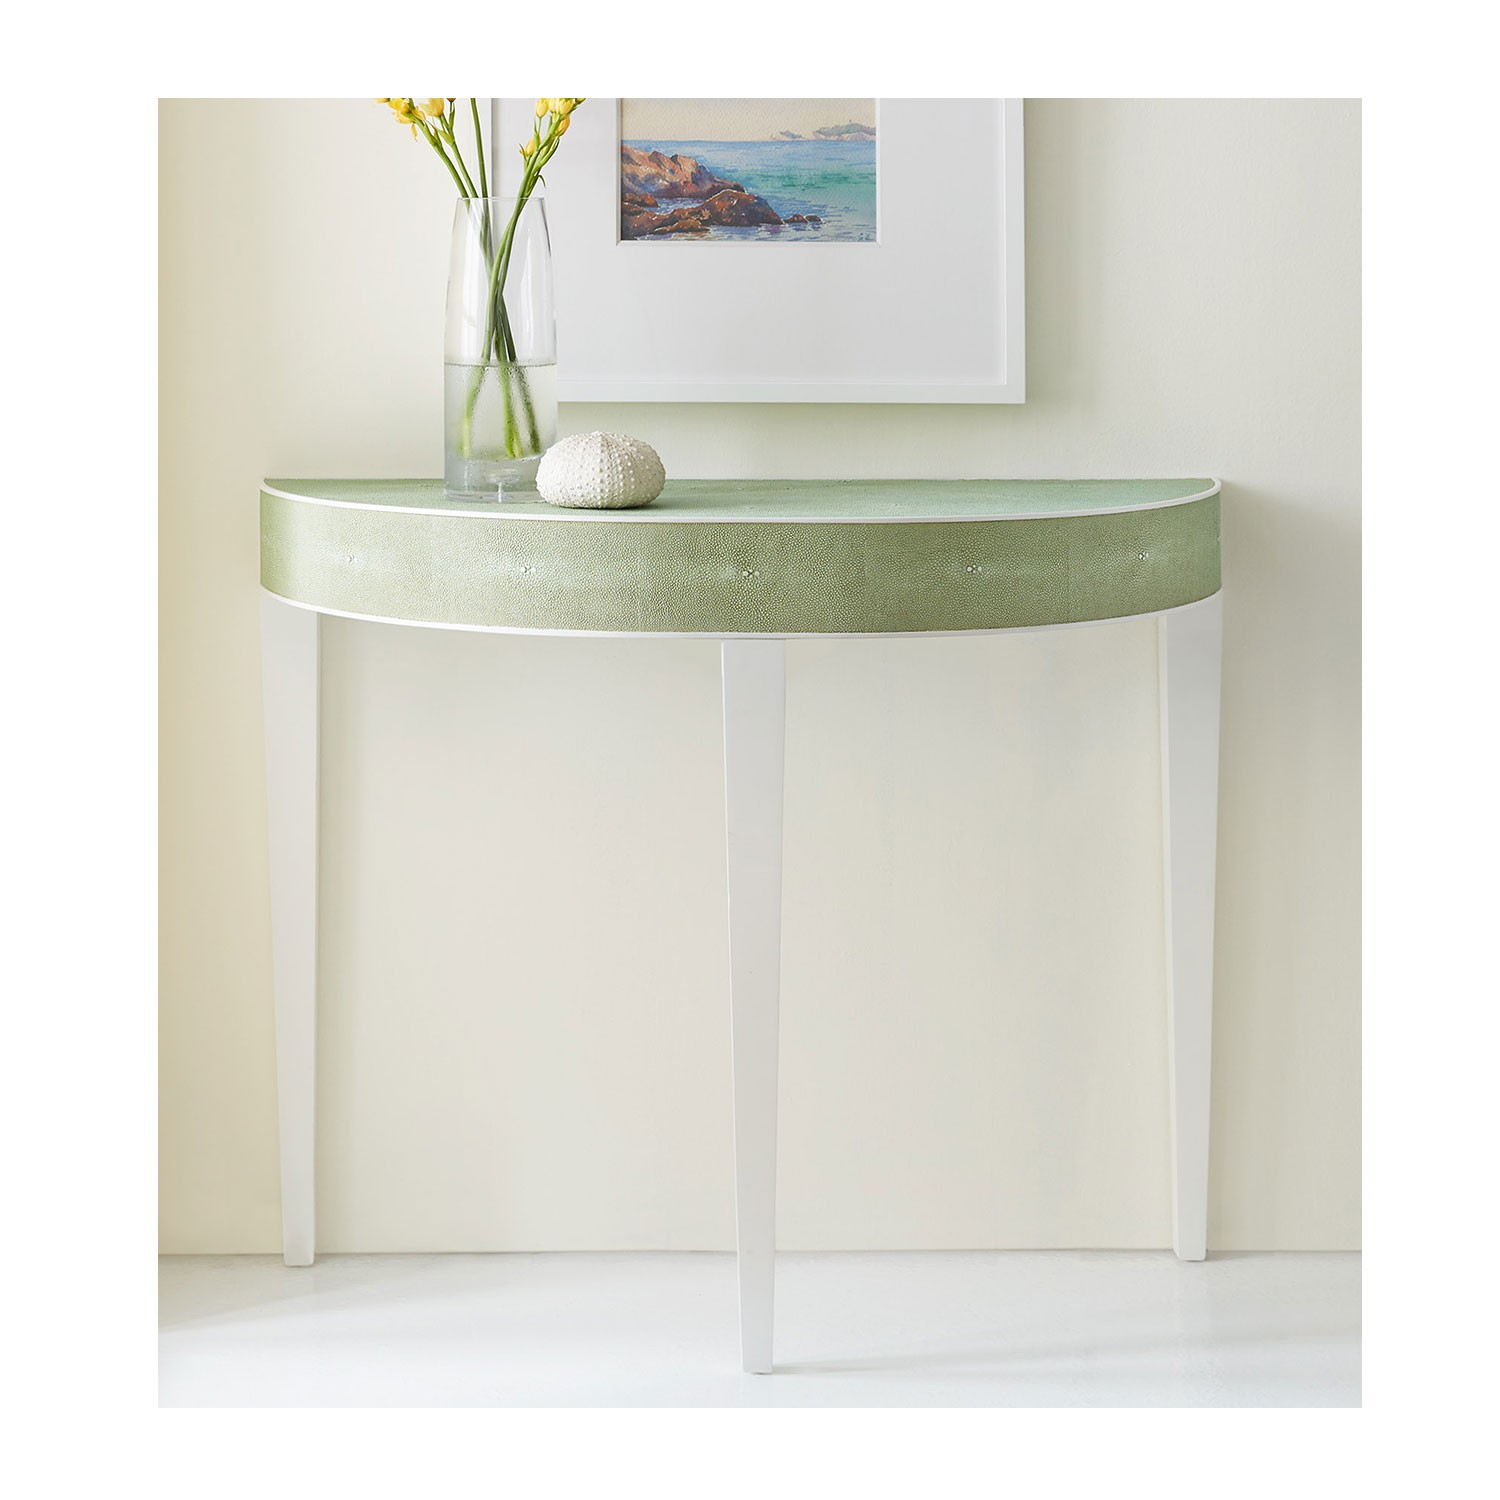 Shagreen Console Demilune Regarding Grey Shagreen Media Console Tables (View 24 of 30)